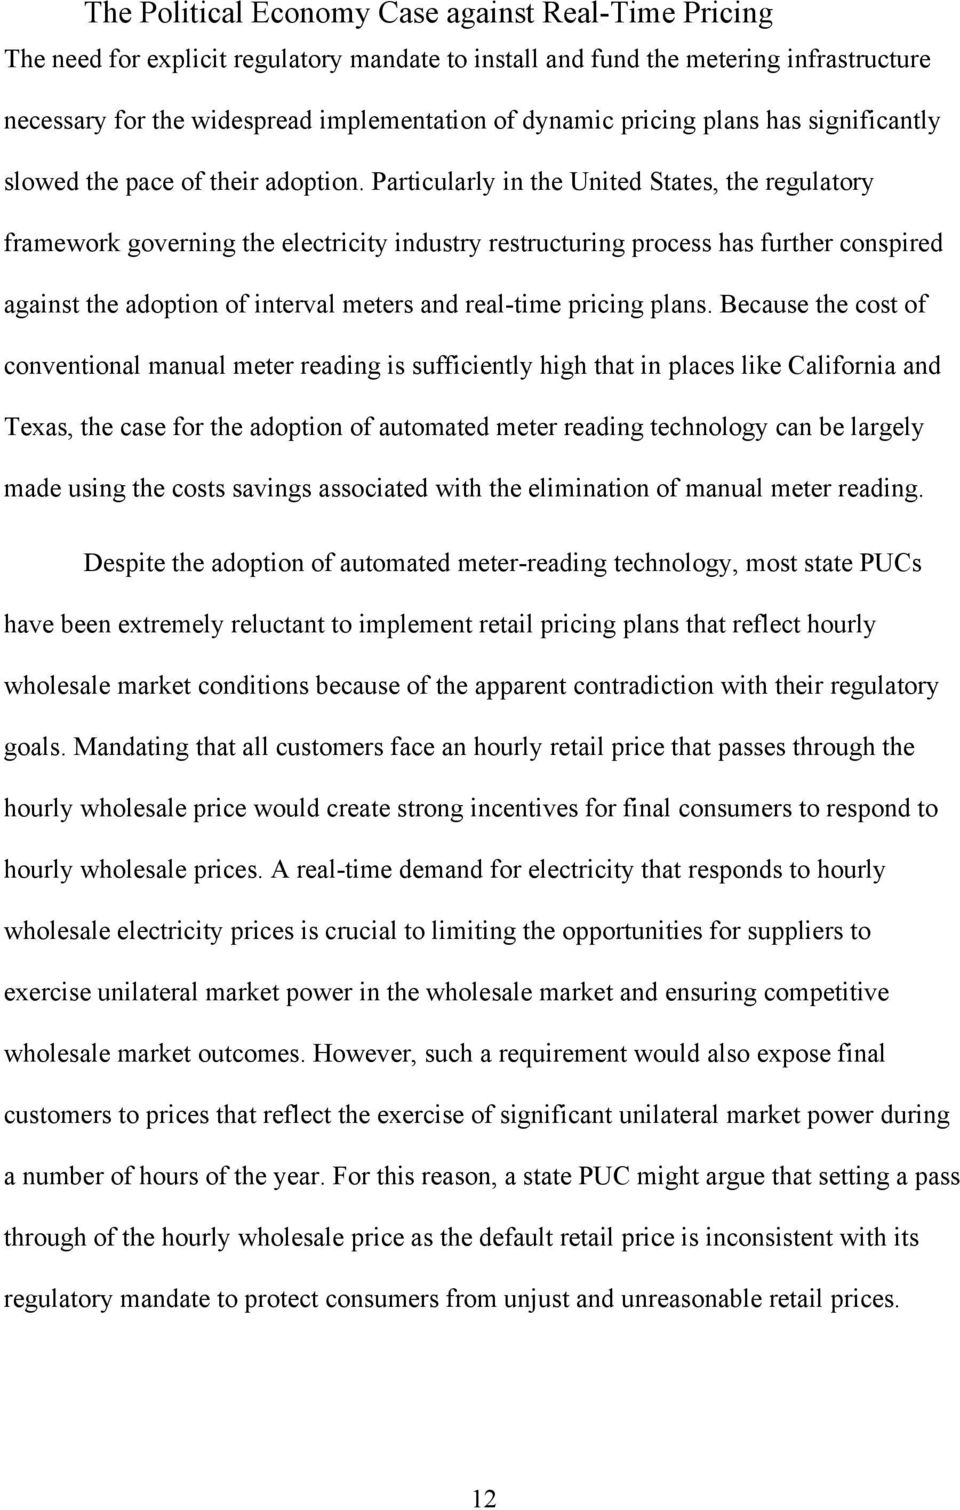 Particularly in the United States, the regulatory framework governing the electricity industry restructuring process has further conspired against the adoption of interval meters and real-time